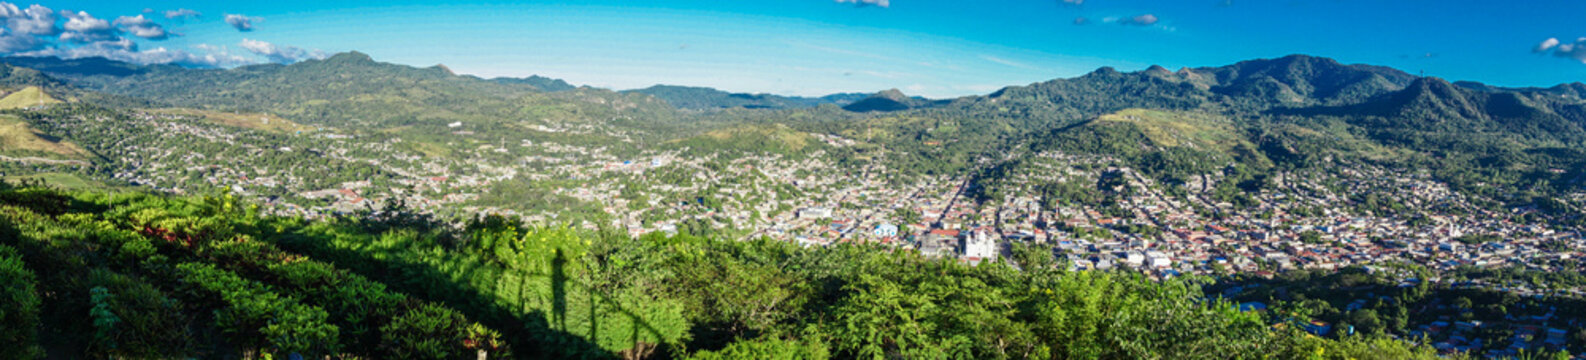 nice view from the lookout in the city of matagalpa